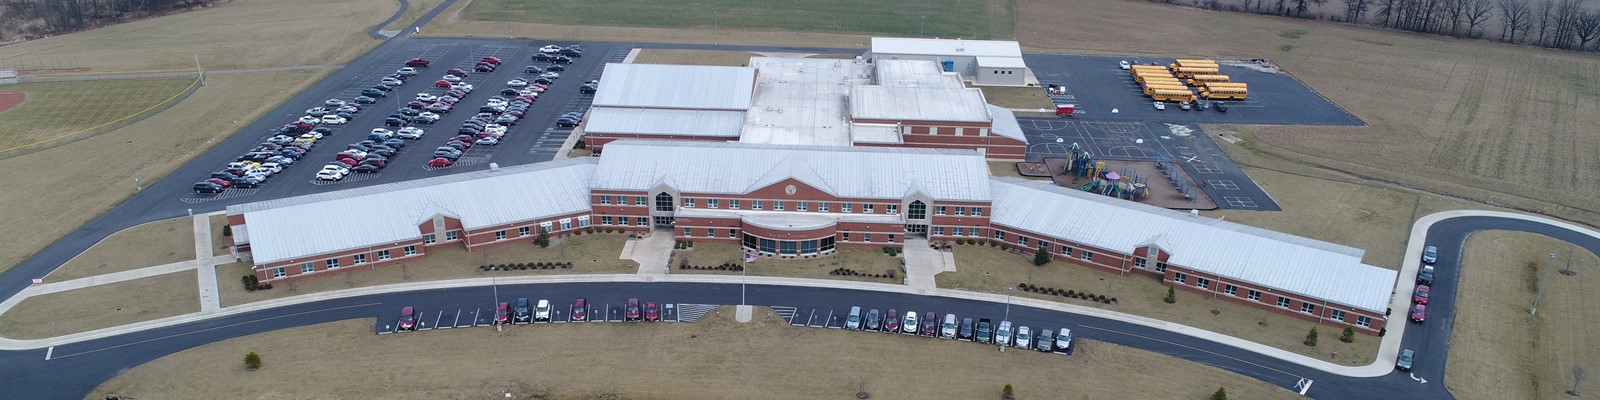 Buckeye Central Schools - Drones Eye View